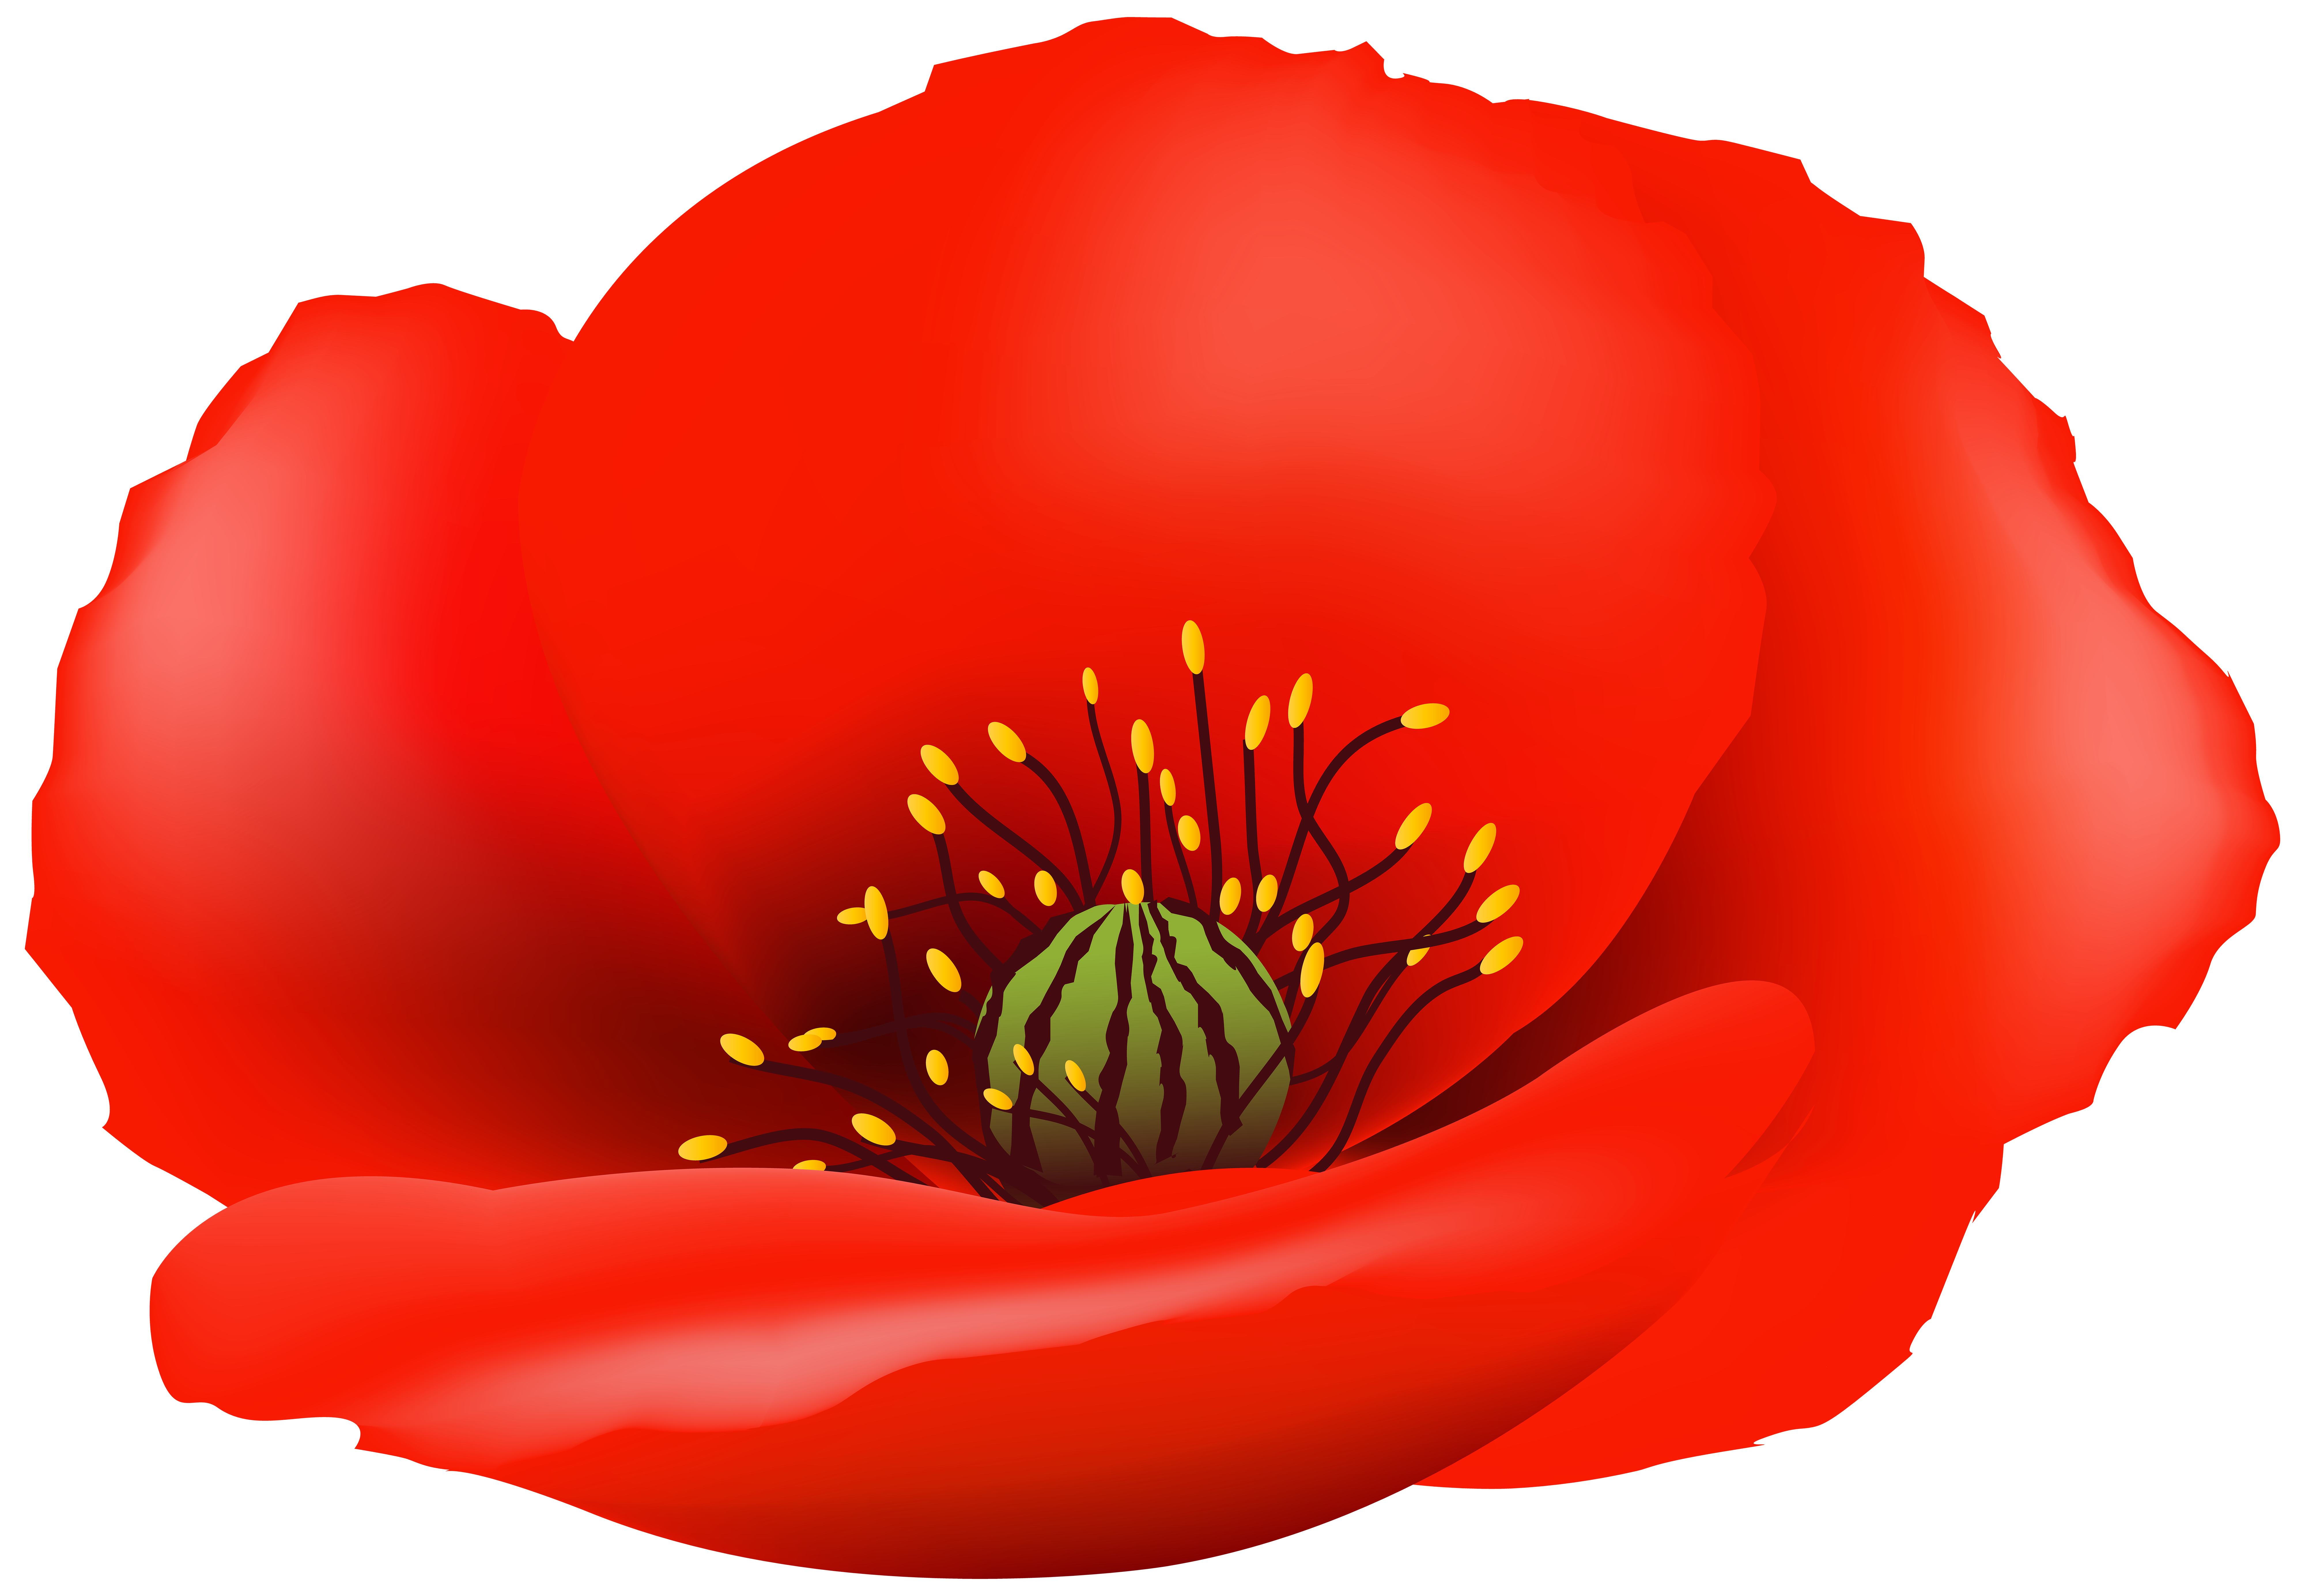 Poppy flower clipart png freeuse library Poppy Flower PNG Clip Art Image | Gallery Yopriceville - High ... png freeuse library